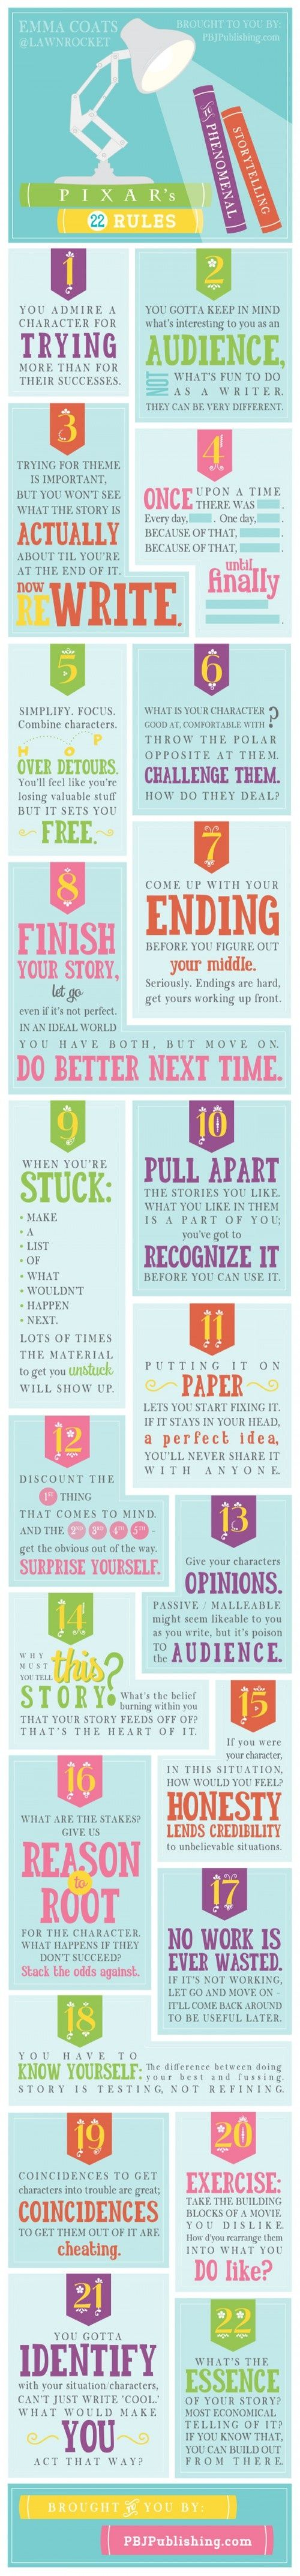 Pixar's 20+ Rules on Storytelling for Teachers and Students ~ Educational Technology and Mobile Learning